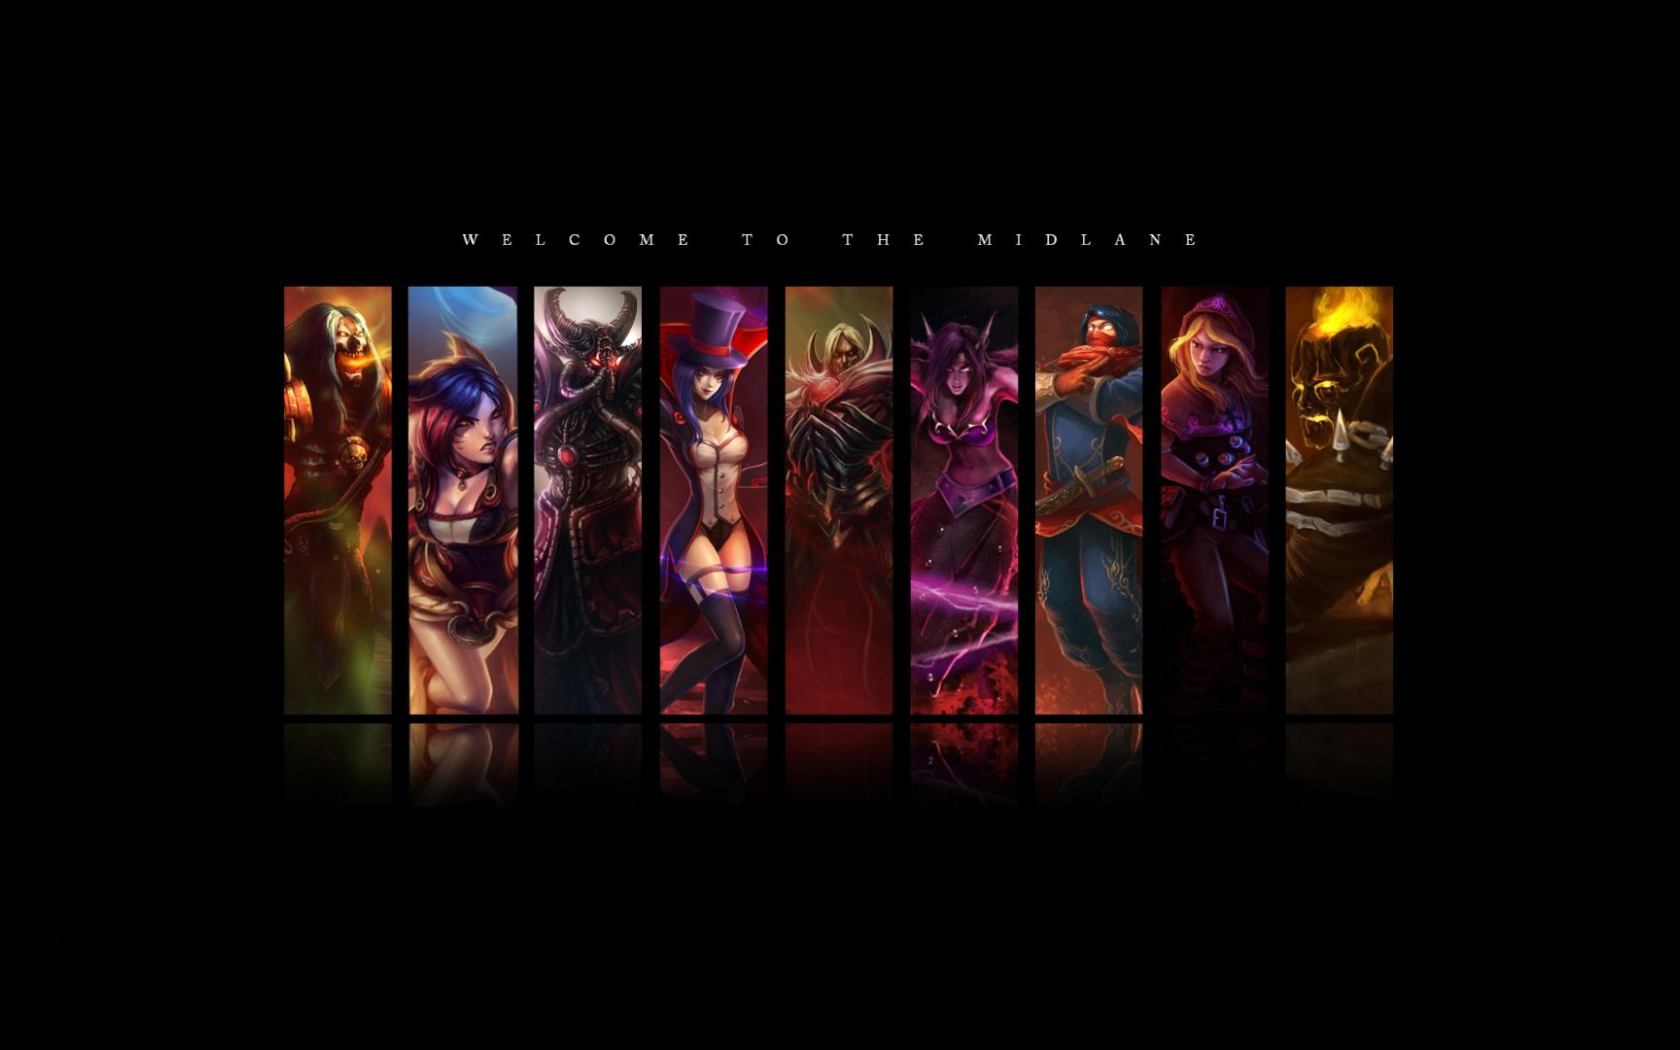 Free Download League Of Legends Wallpaper Jungle Spoiler Wallpaper